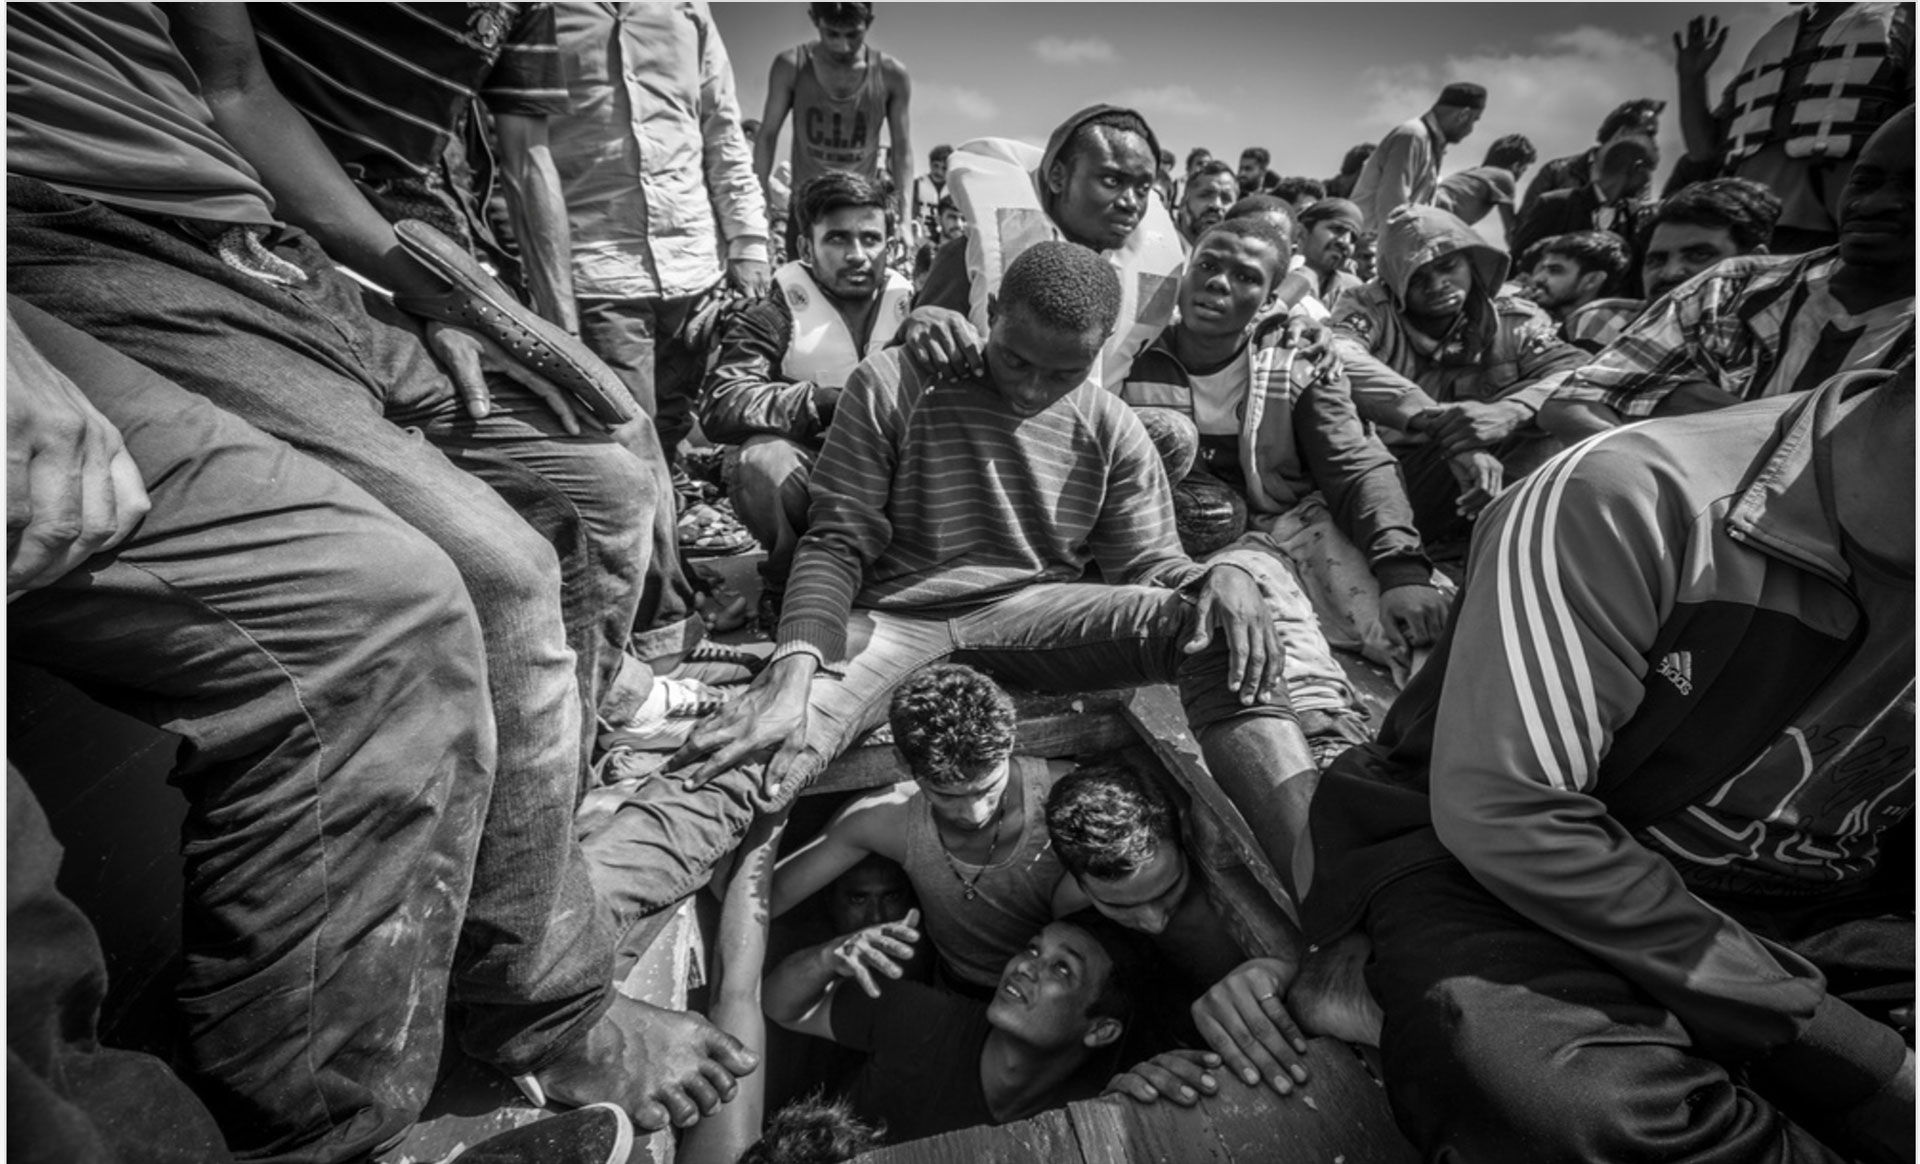 Image © Jason Florio - Photojournalism Winner, Magnum Photography Awards 2017. Migrants come from below deck on overcrowded smugglers boat